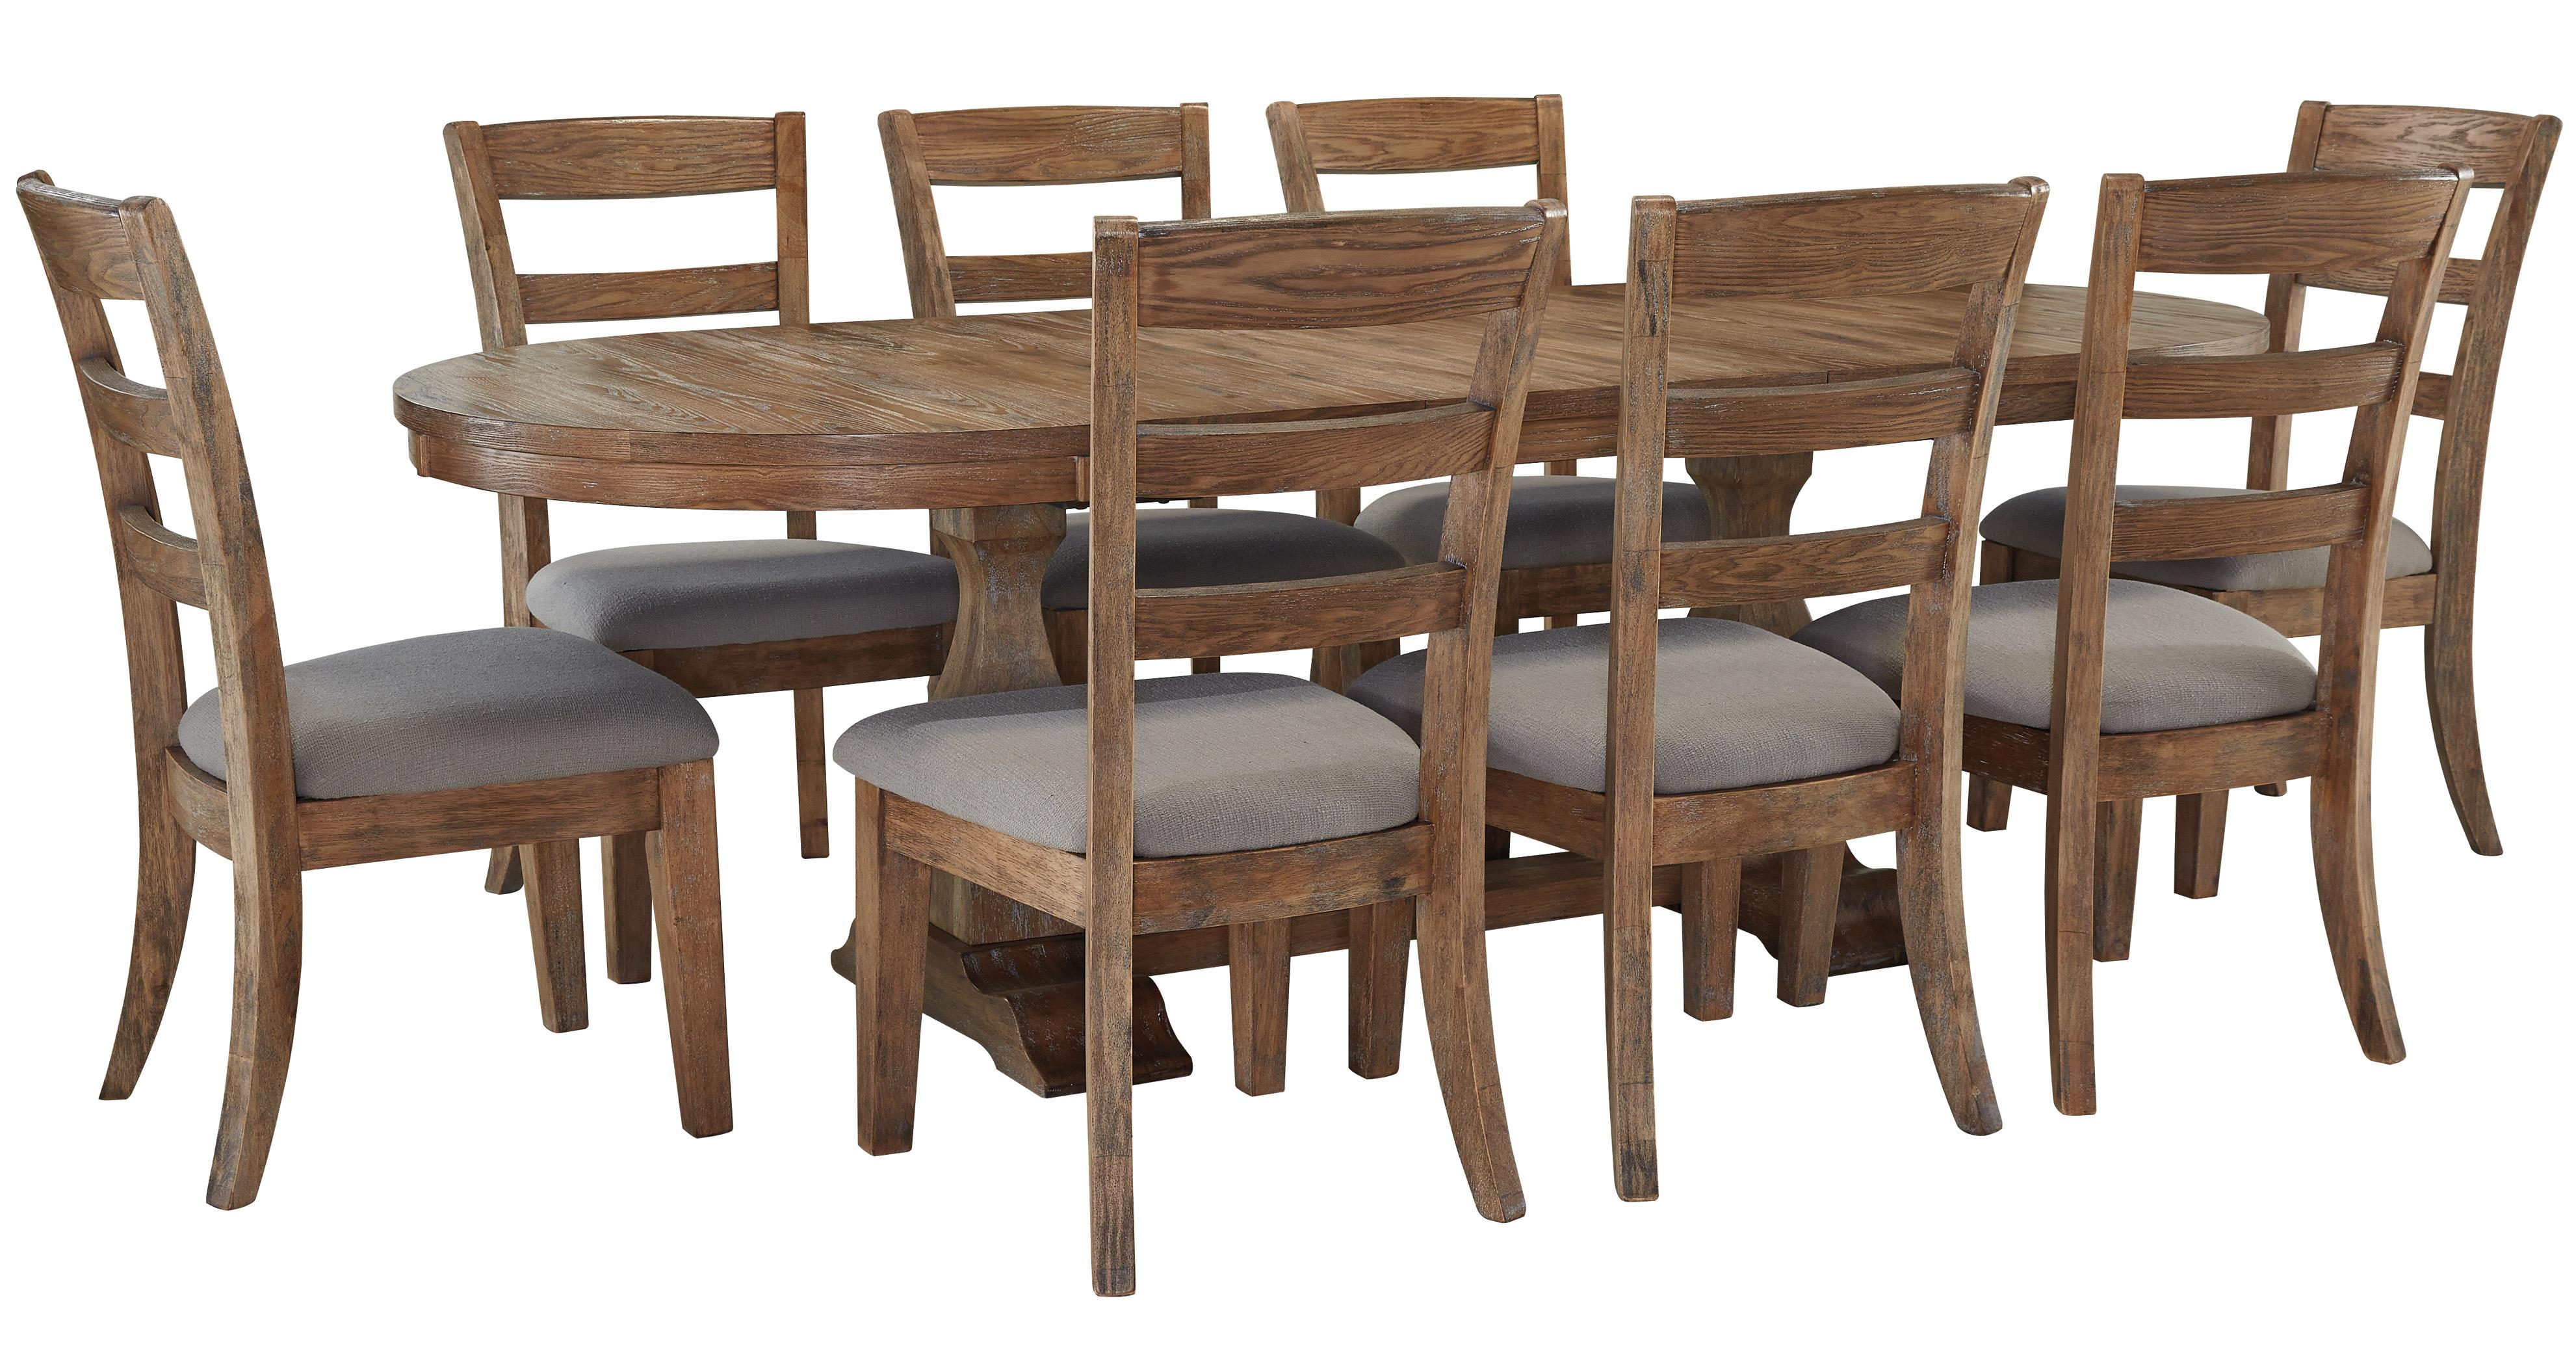 Signature Design by Ashley Danimore 9 Piece Dining Set with Oval Table - Item Number: D473-45B+T+8x01